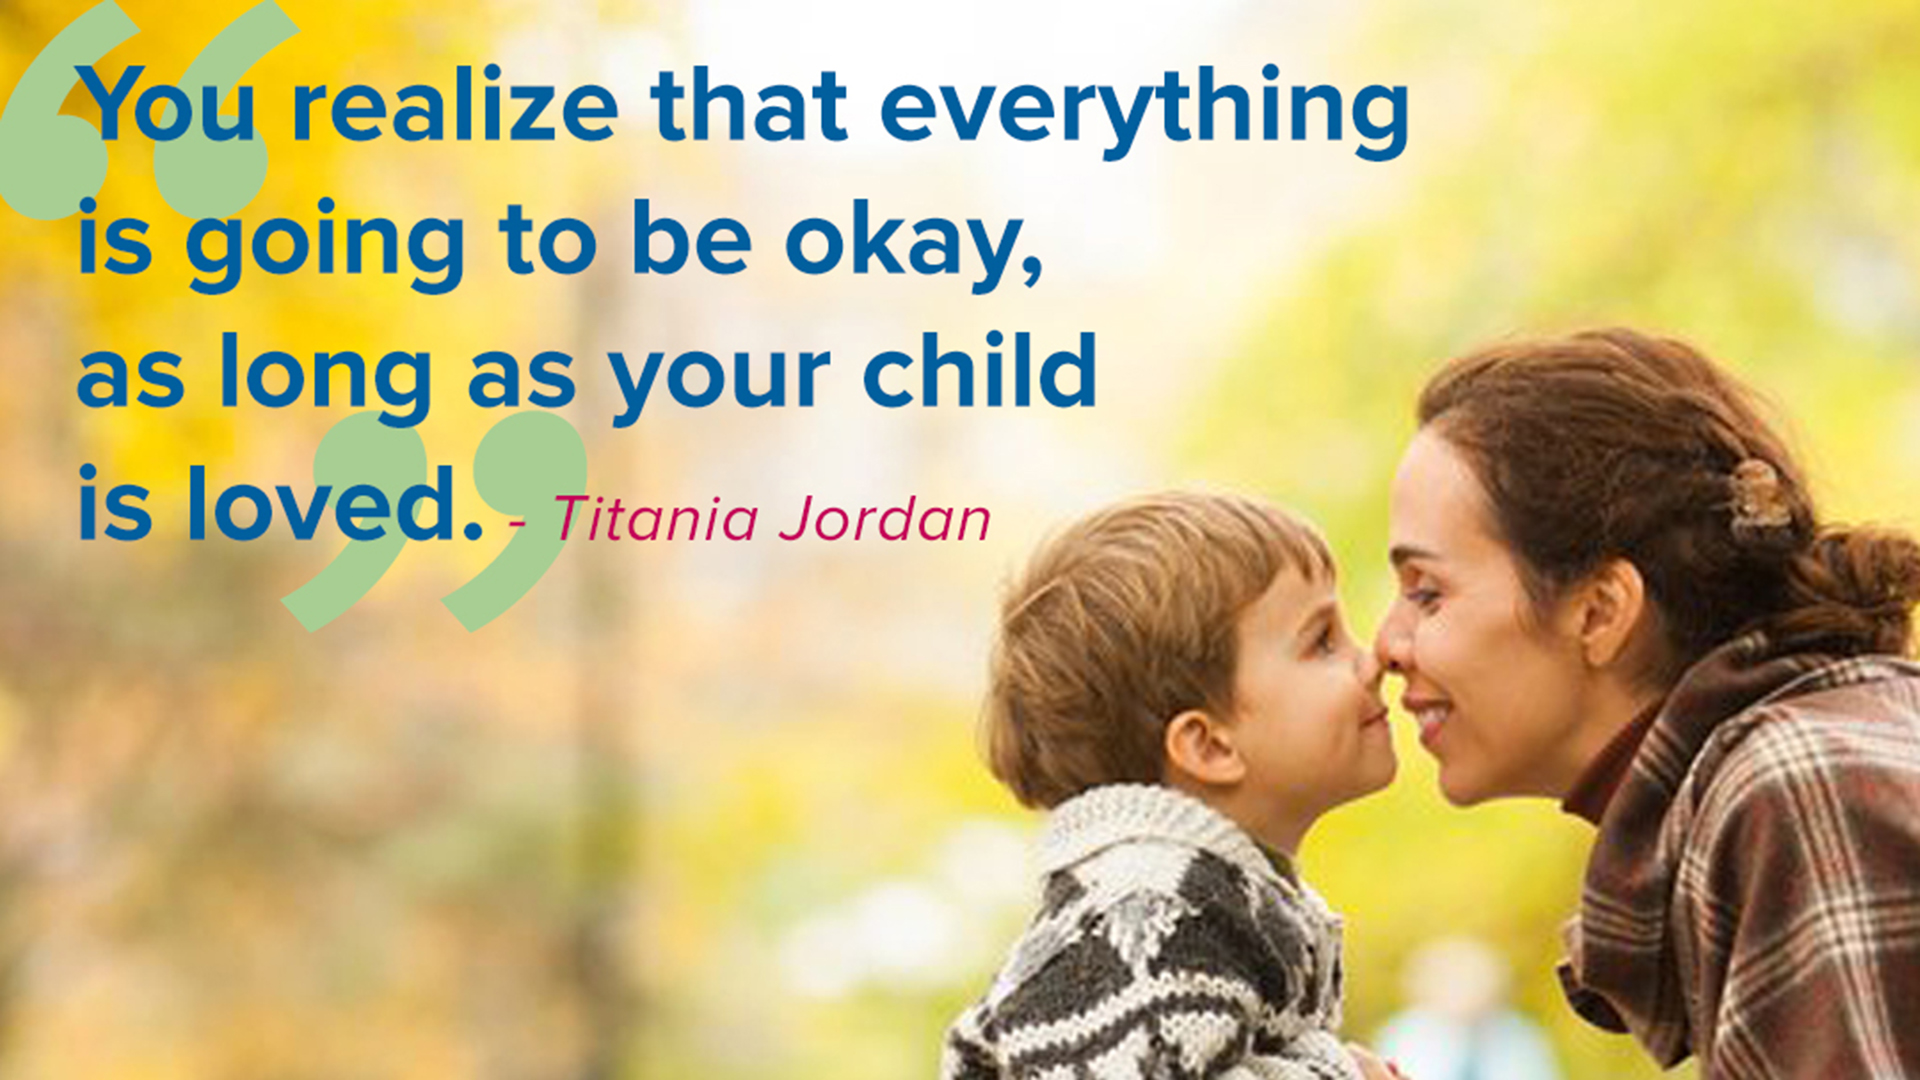 Love Your Children Quotes Love At First Sight' 6 Timeless Quotes About Parenting For